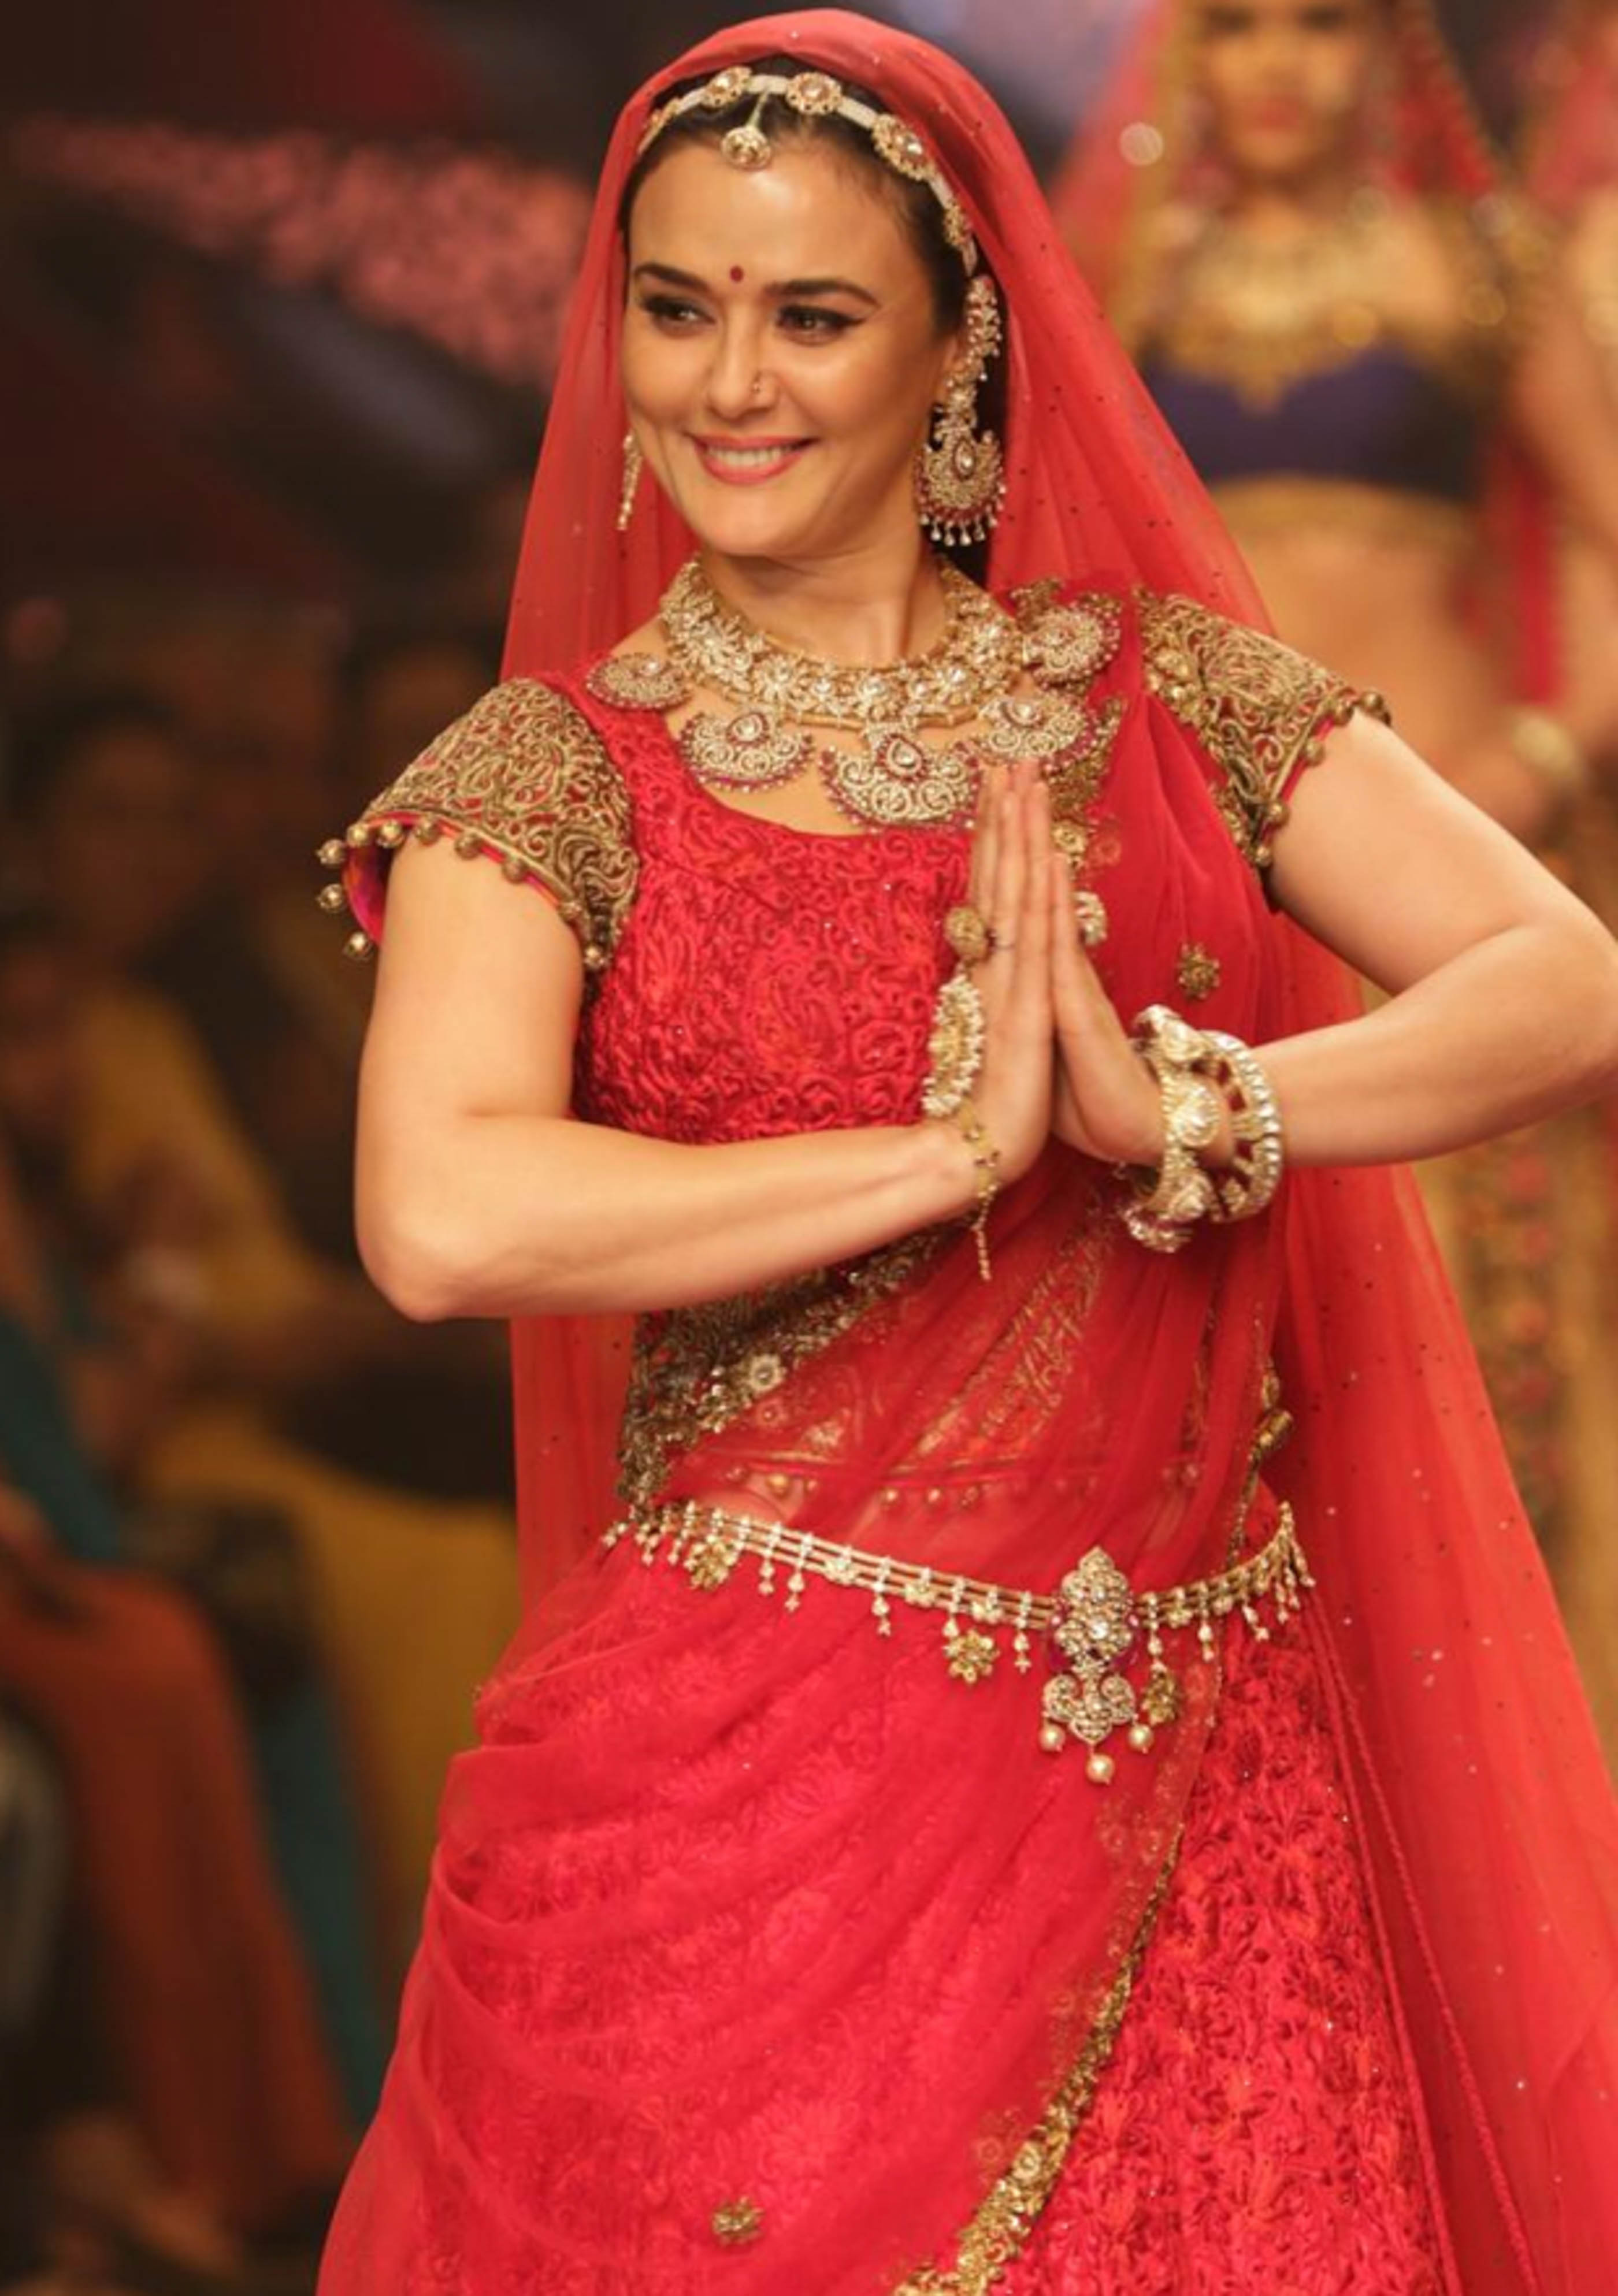 Bridal Jewellery Trends for the Modern Indian Bride - Preity Zinta - The Maharani Diaries